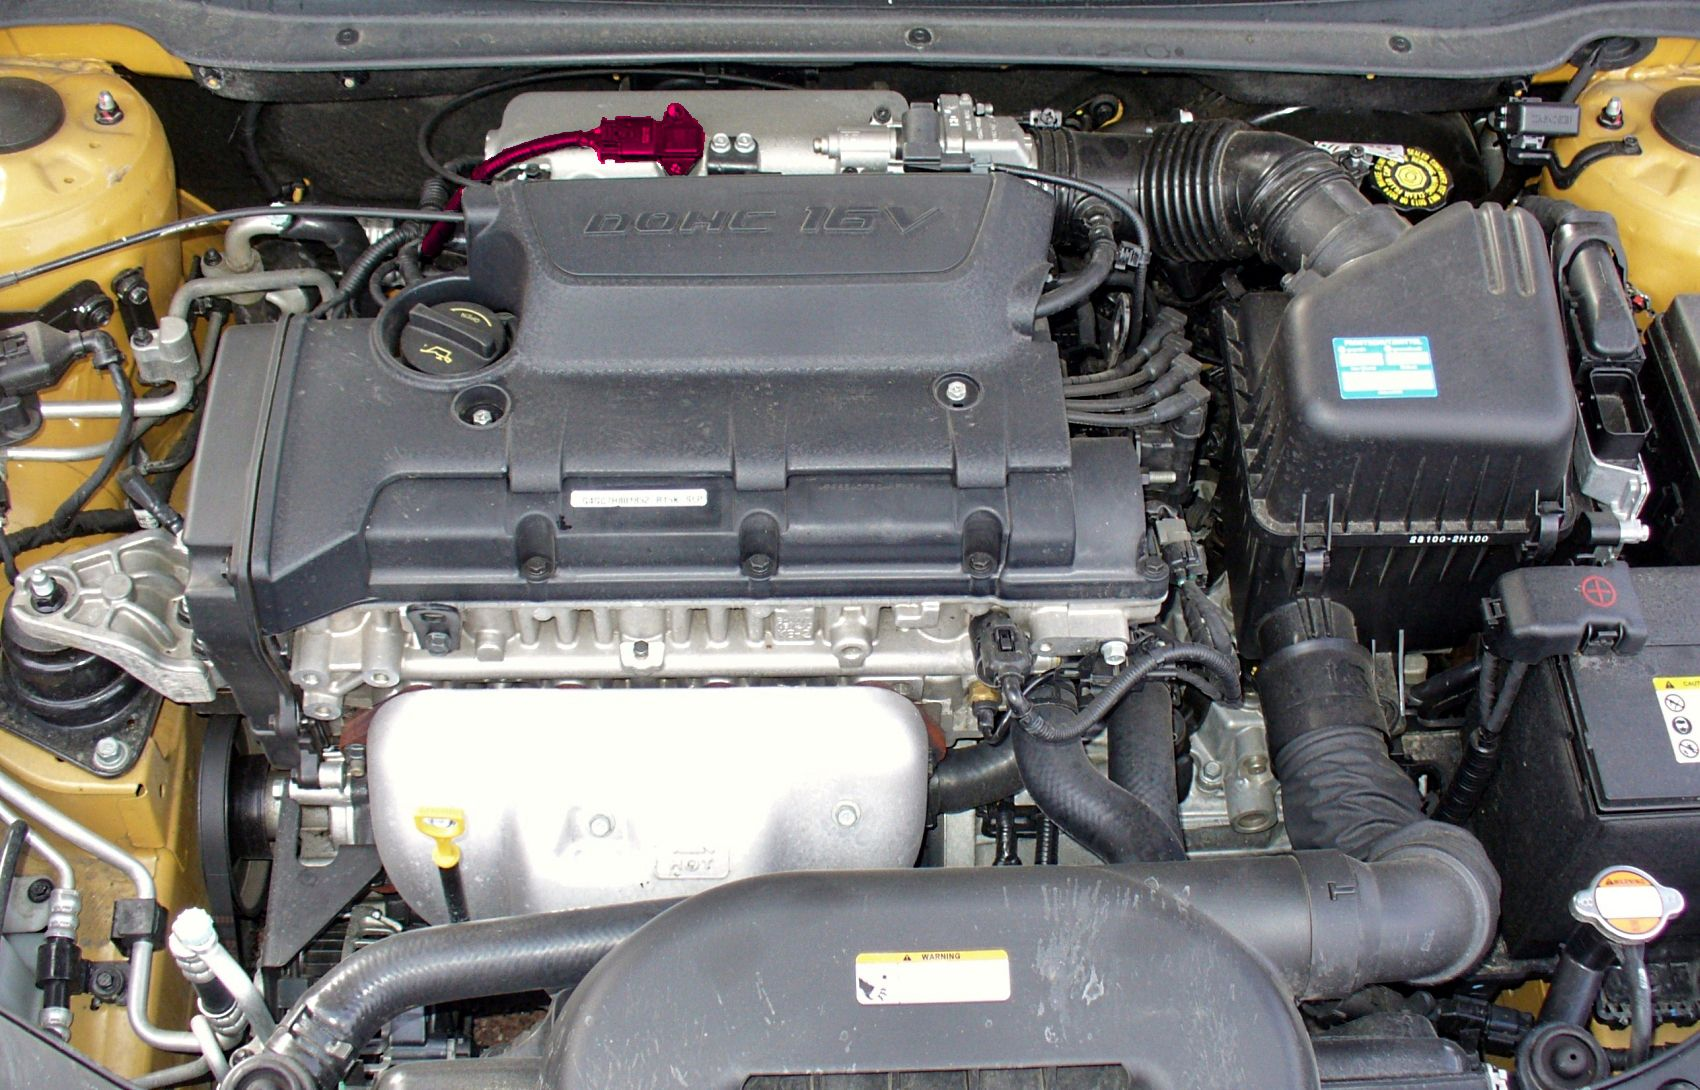 Kia Pro Ceed Tx Granadagelb Motormaphighlighted Af Ff B E B on 2002 Mini Cooper Wiring Diagram